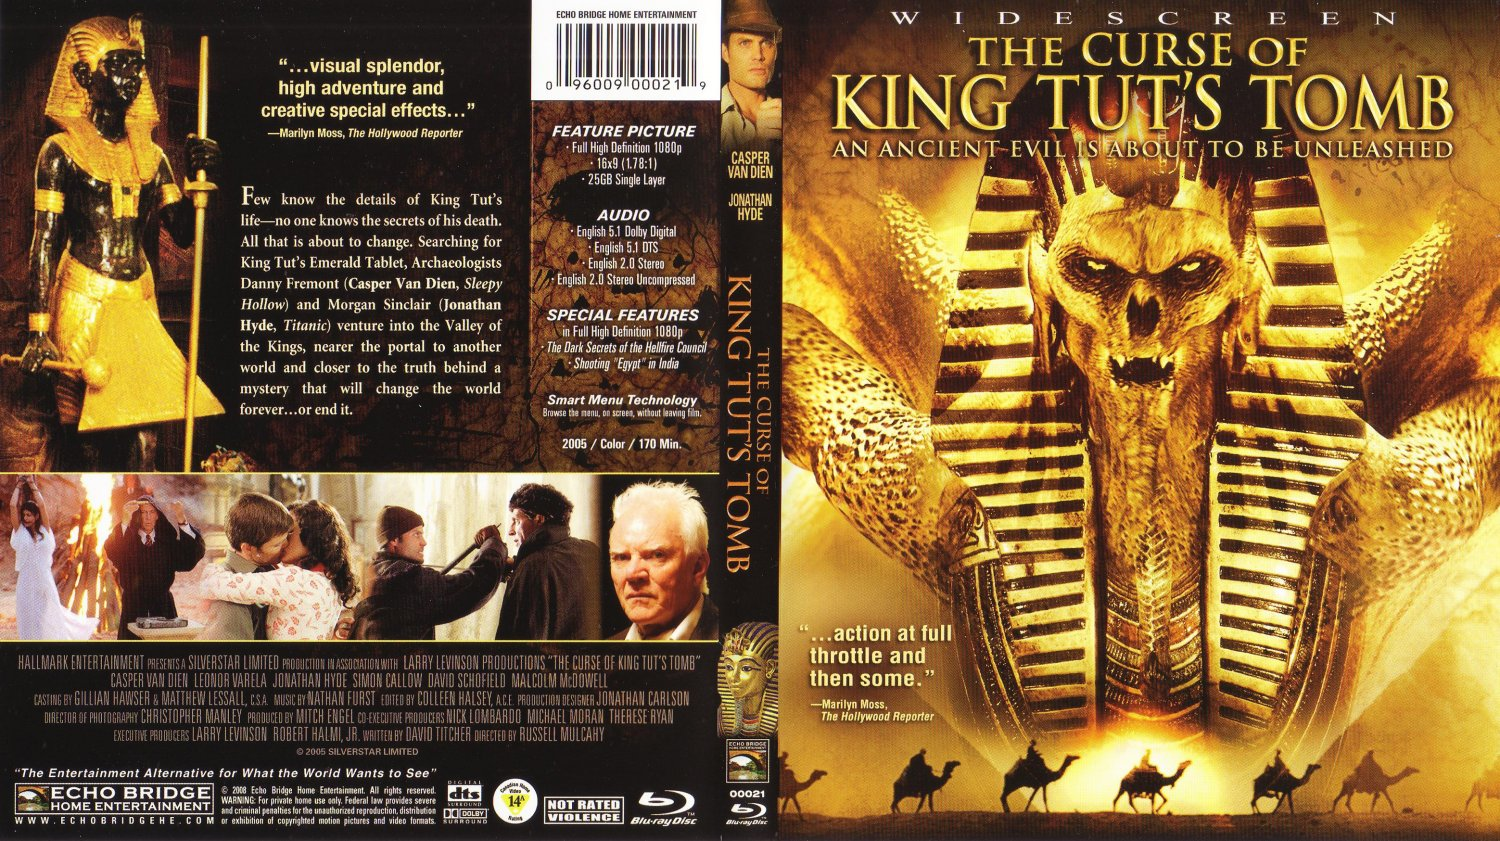 The Curse Of King Tuts Tomb Torrent: The Curse Of King Tut's Tomb (Widescreen DVD) Casper Van